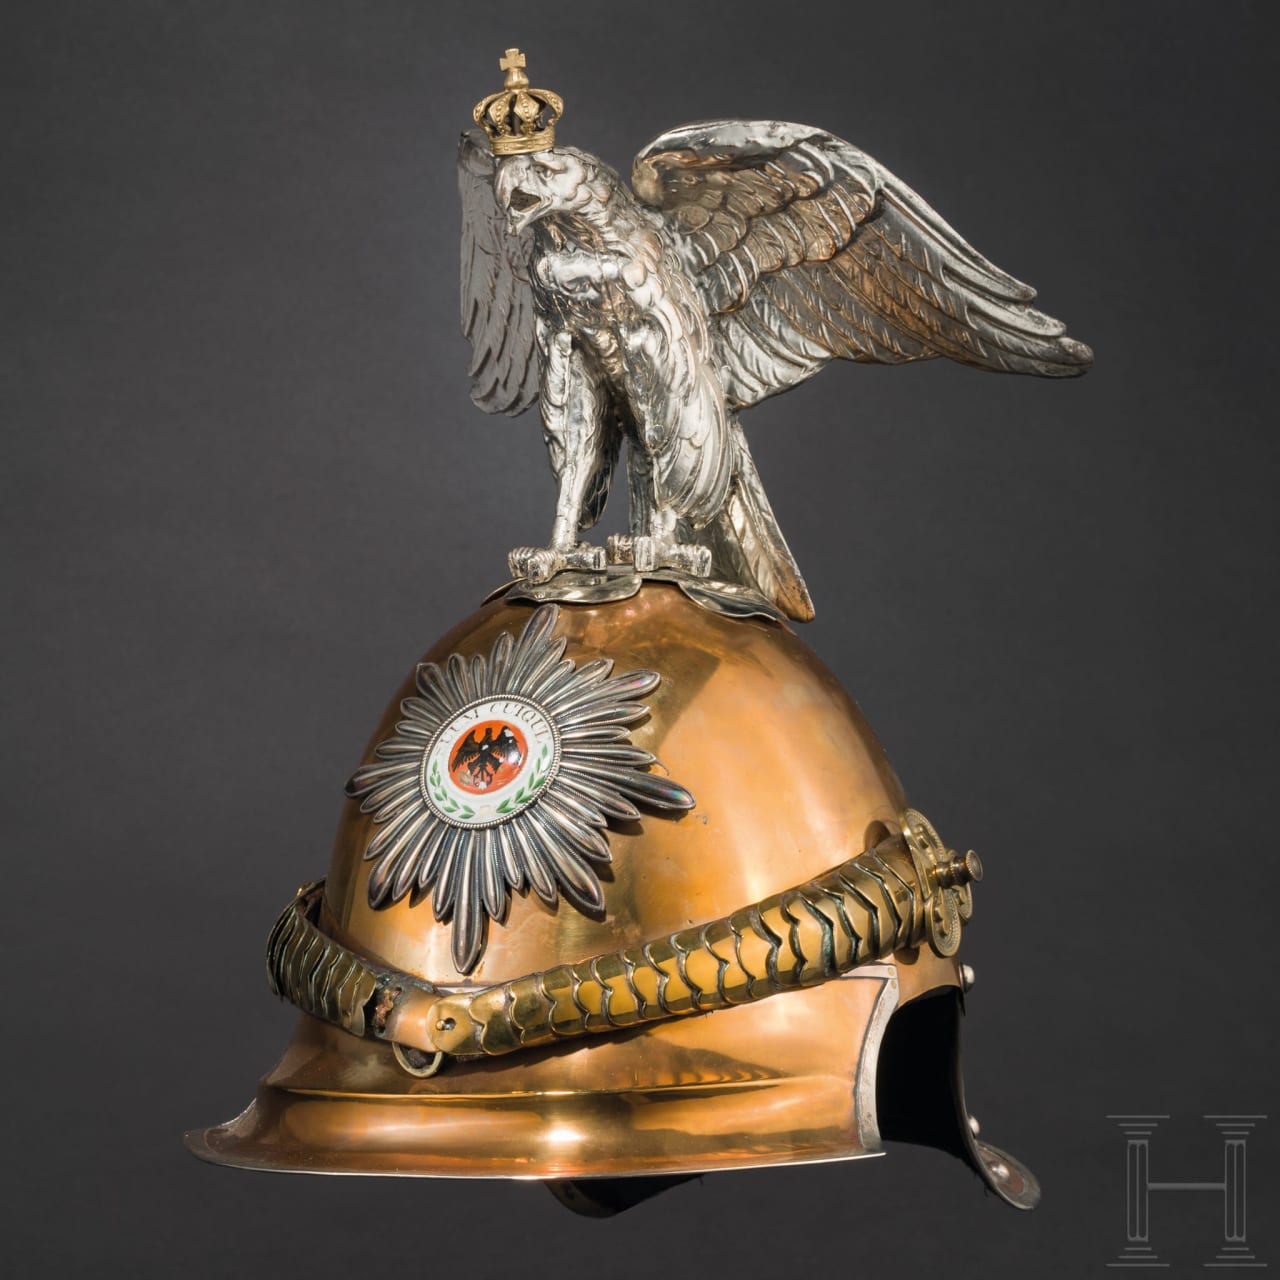 A helmet M 1843 for officers of the Regiments Guard du Corps and Guard Cuirassiers